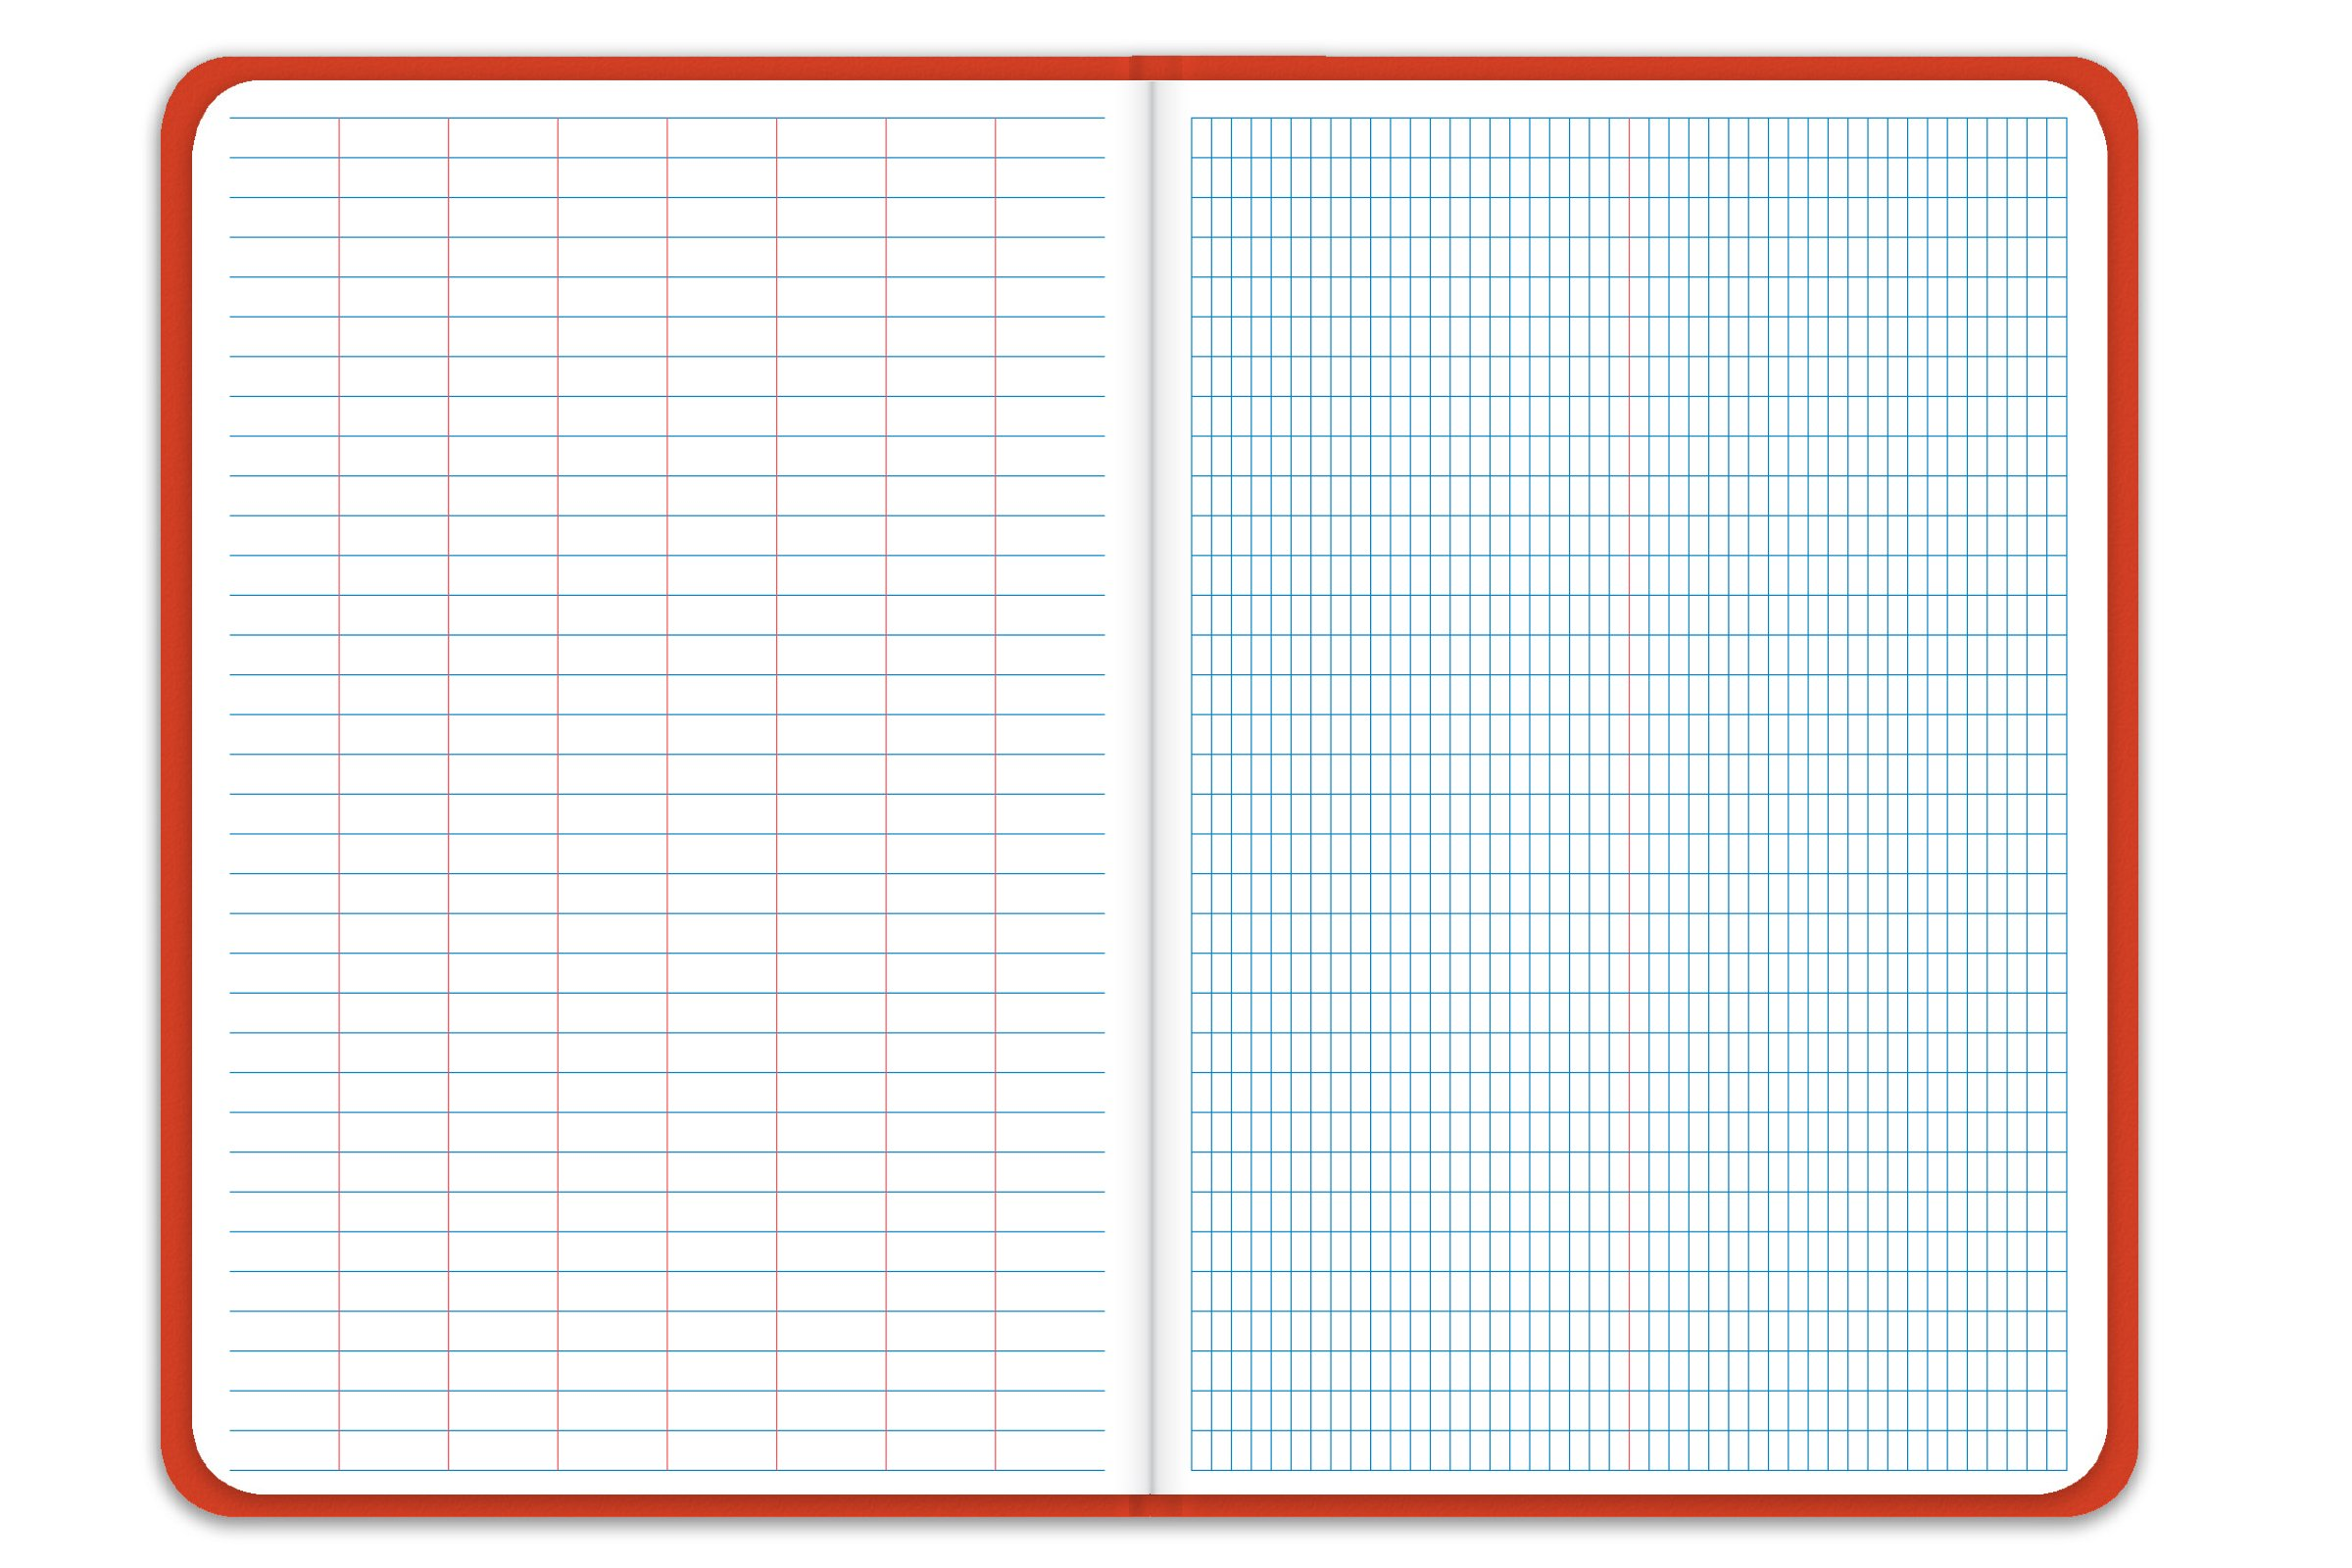 Elan Publishing Company E64-8x4K King Size Field Surveying Book 6 x 9, Bright Orange Cover (Pack of 24) by Elan Publishing Company (Image #2)